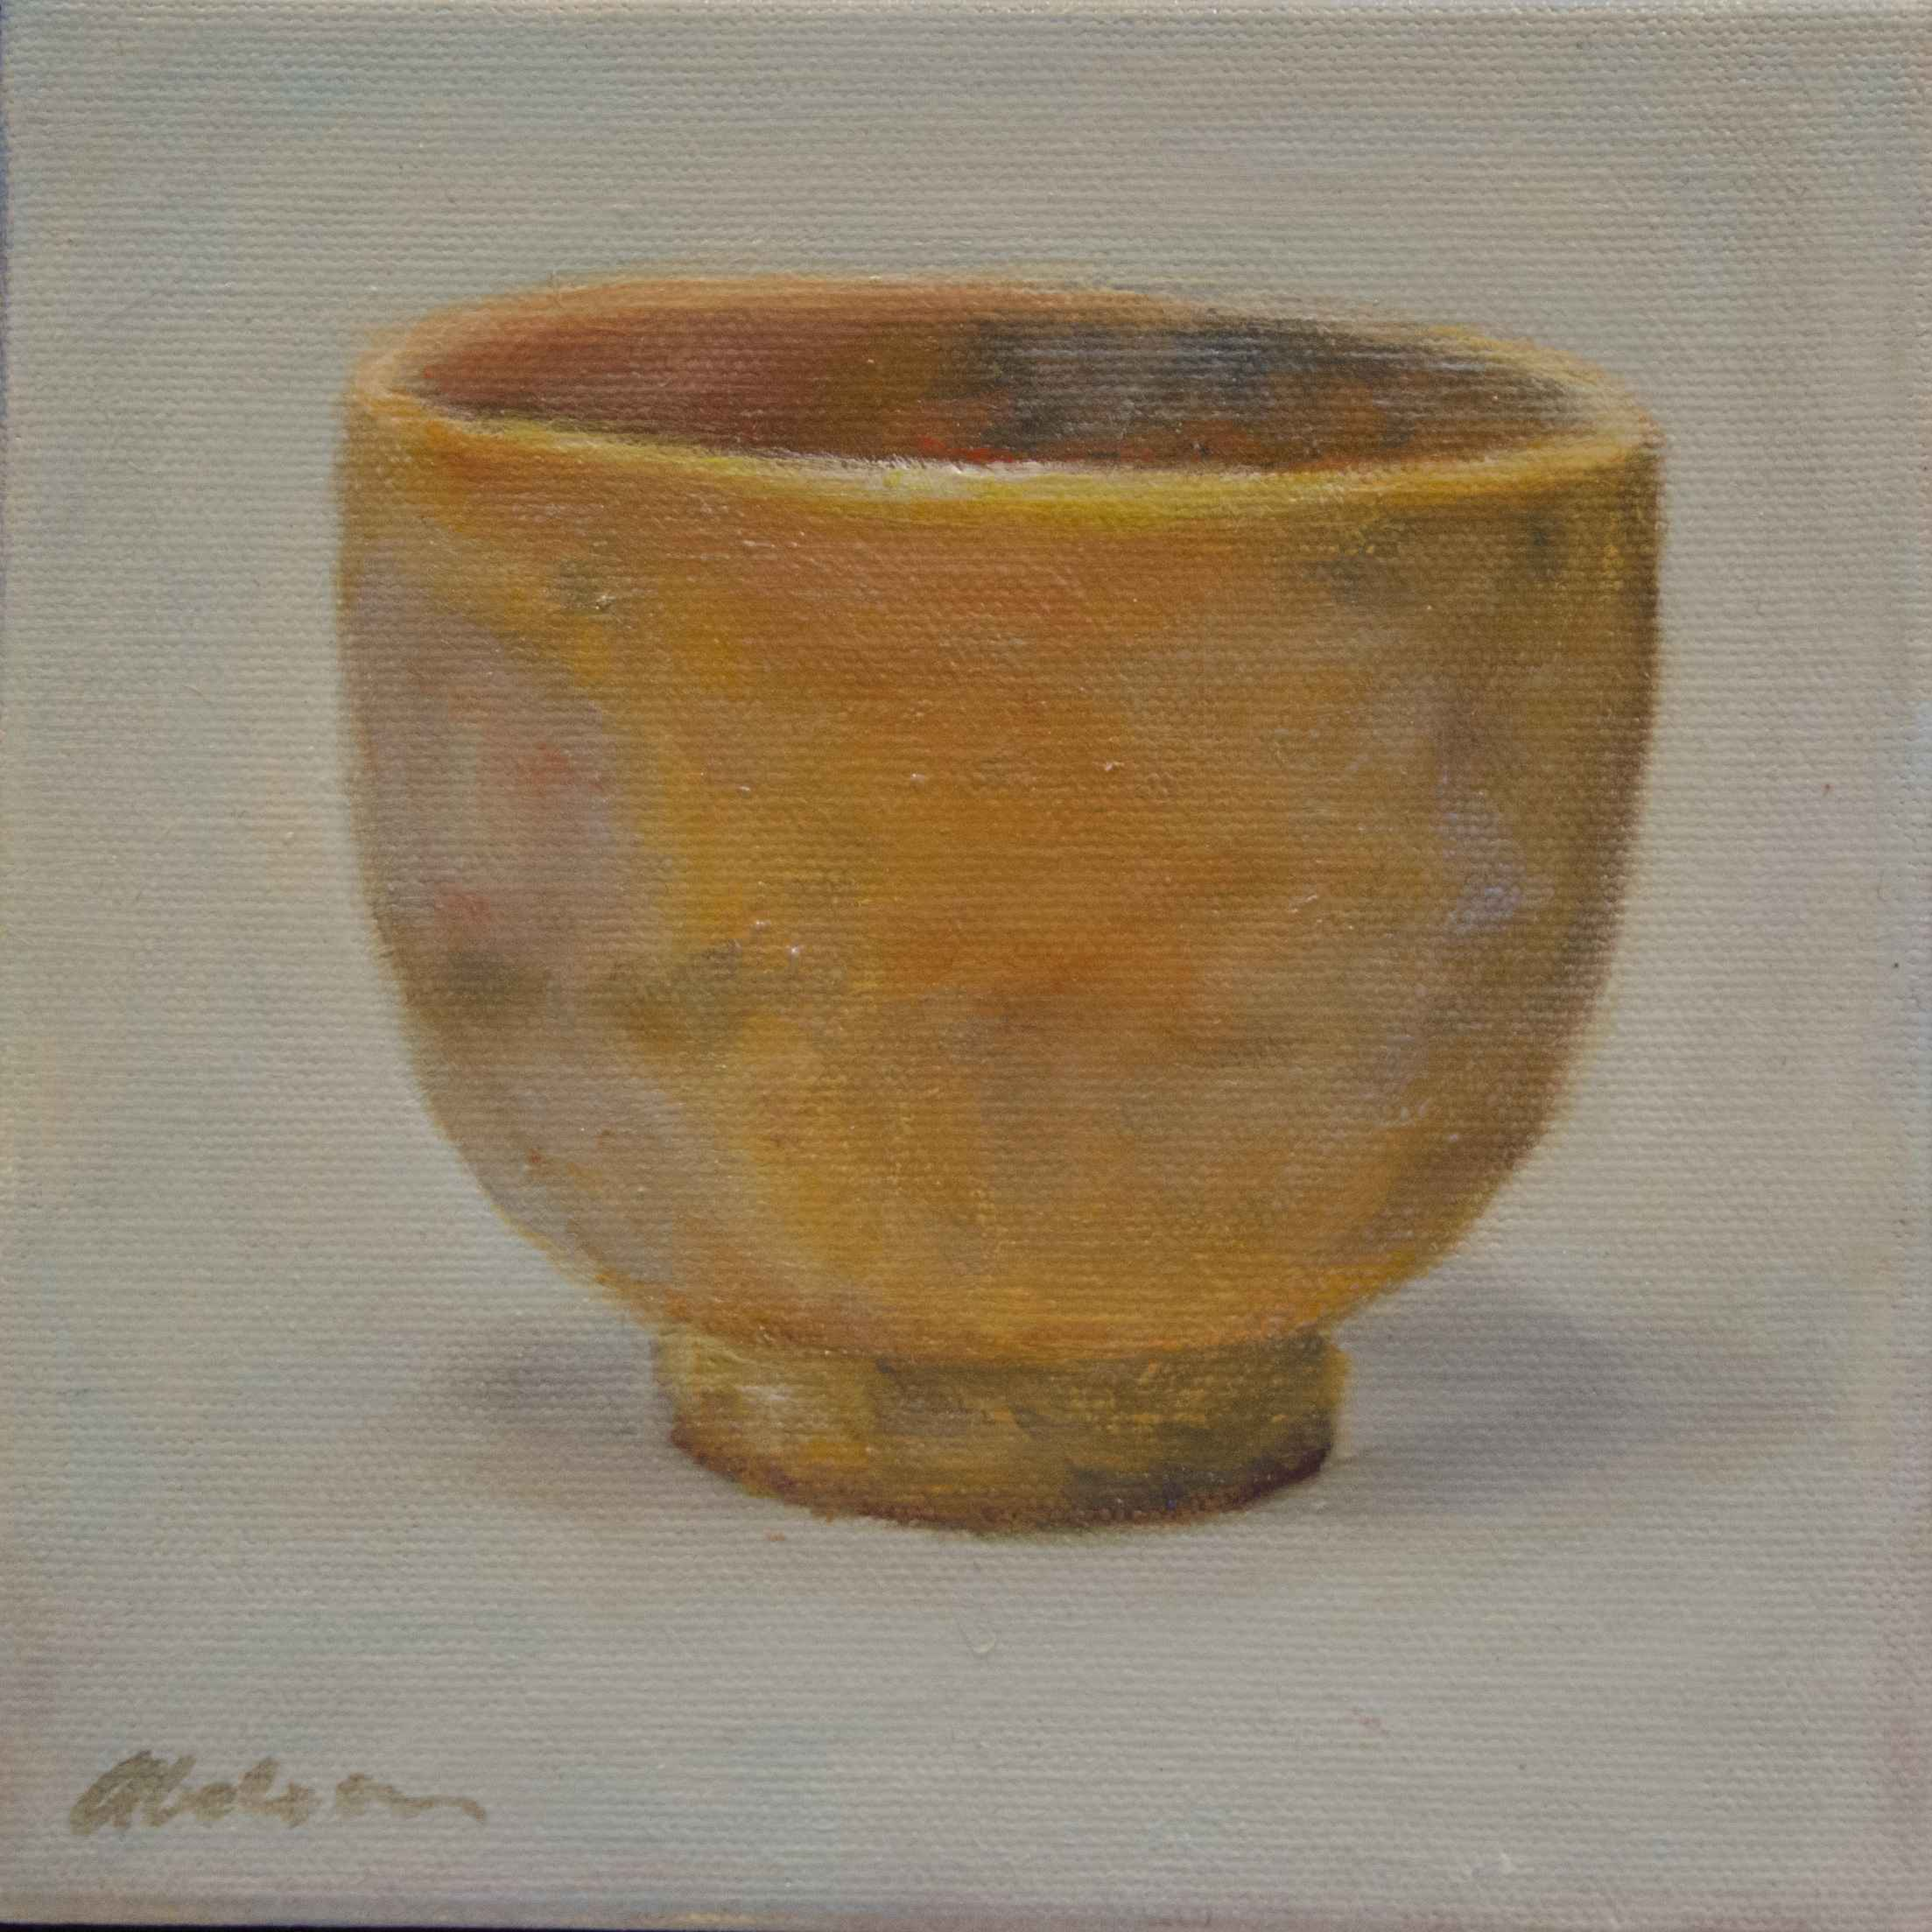 Japanese Teacup I by Mrs. Myra Abelson - Masterpiece Online